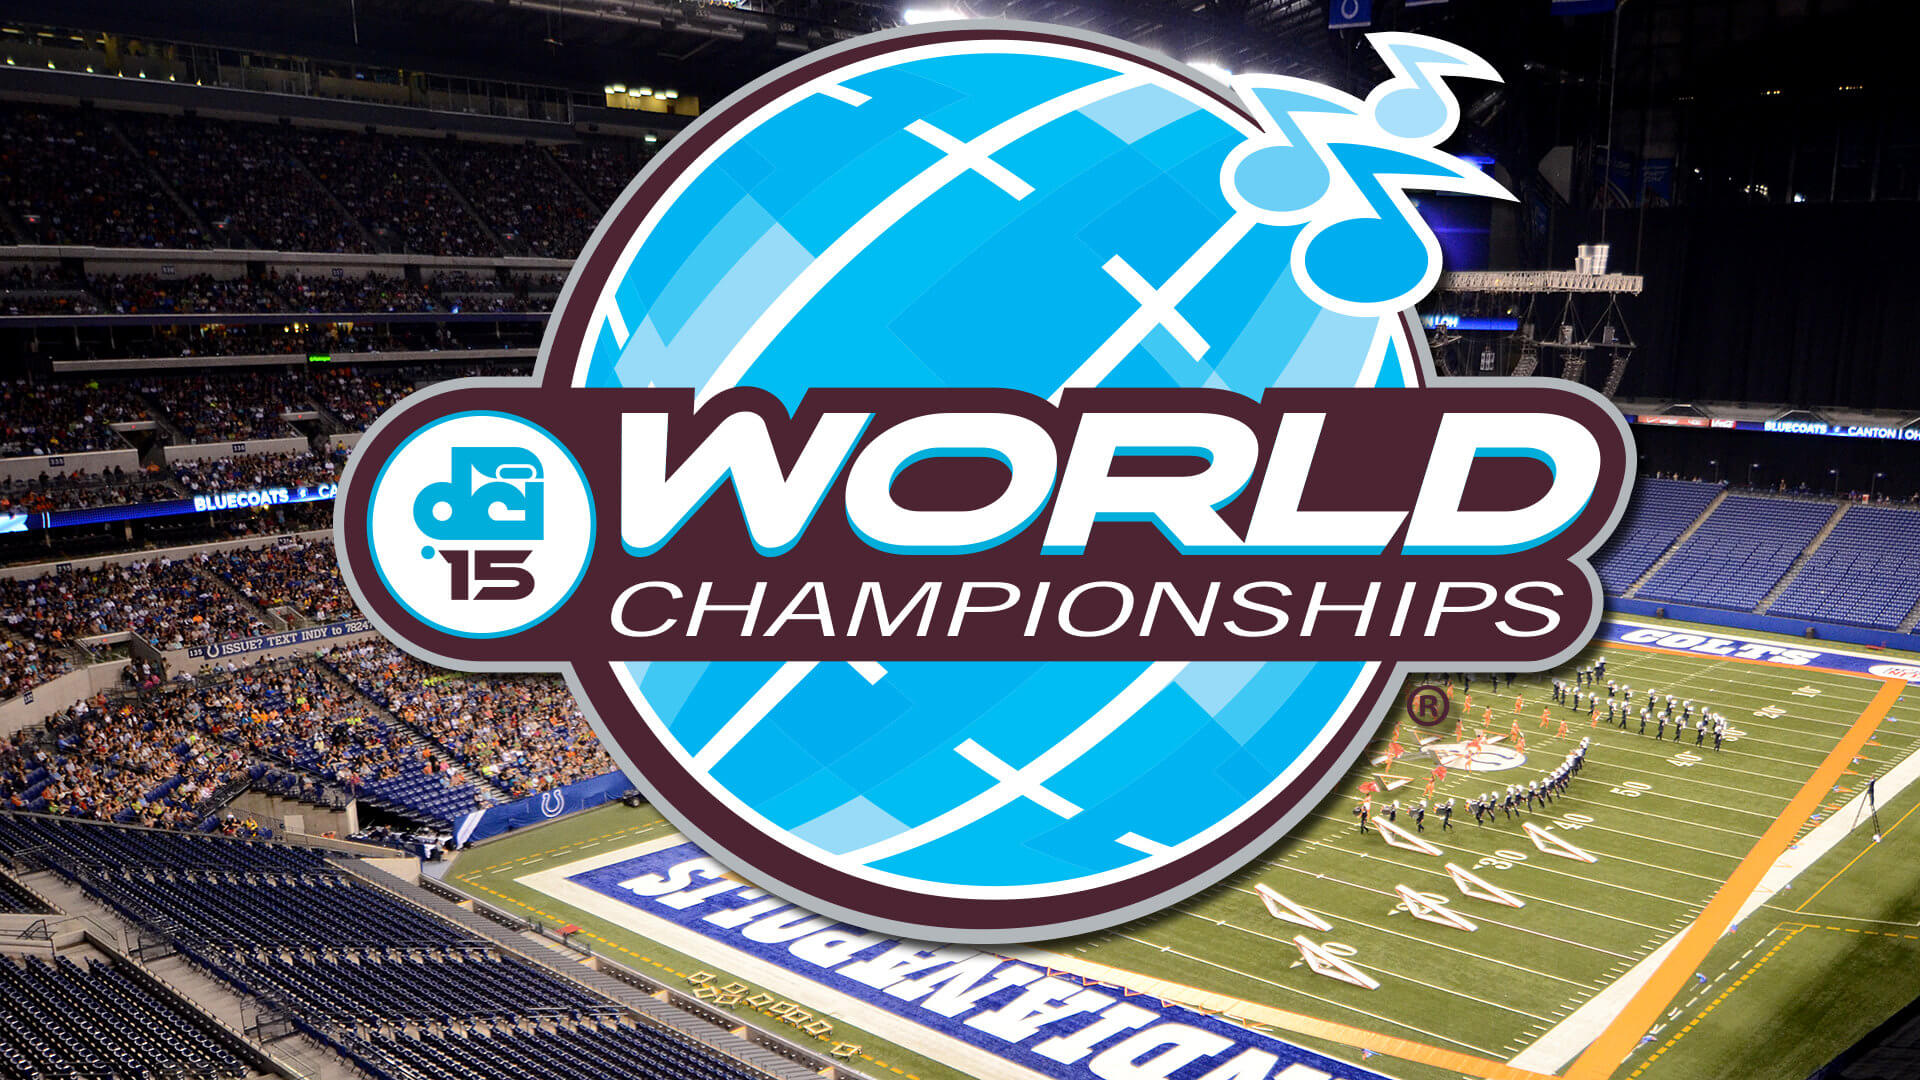 Day-by-day guide to the 2015 DCI World Championships